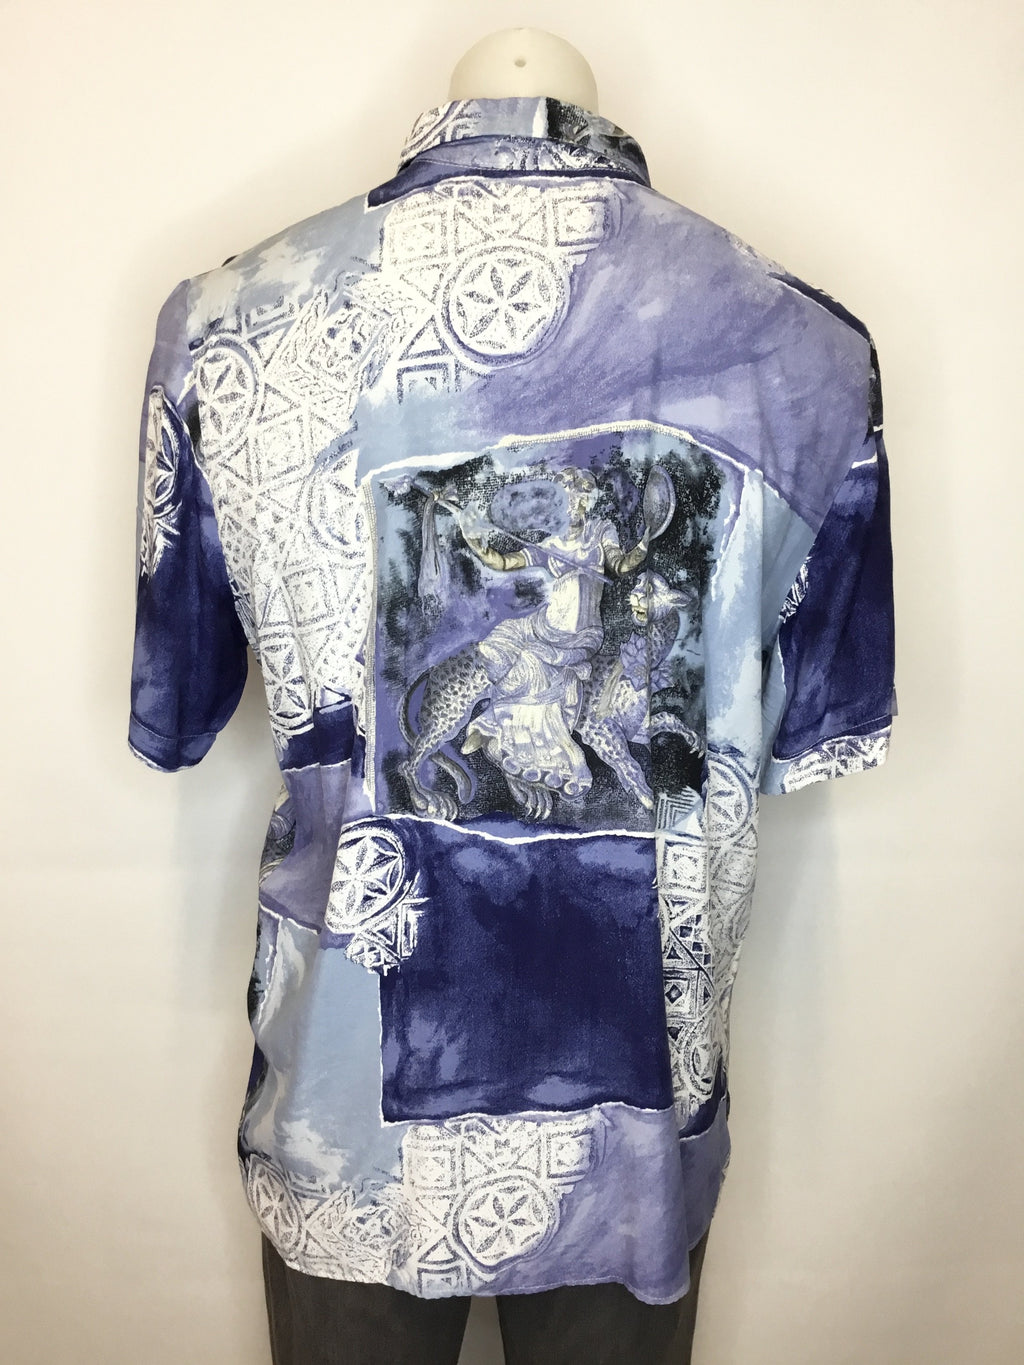 Flowing Serene Party Shirt